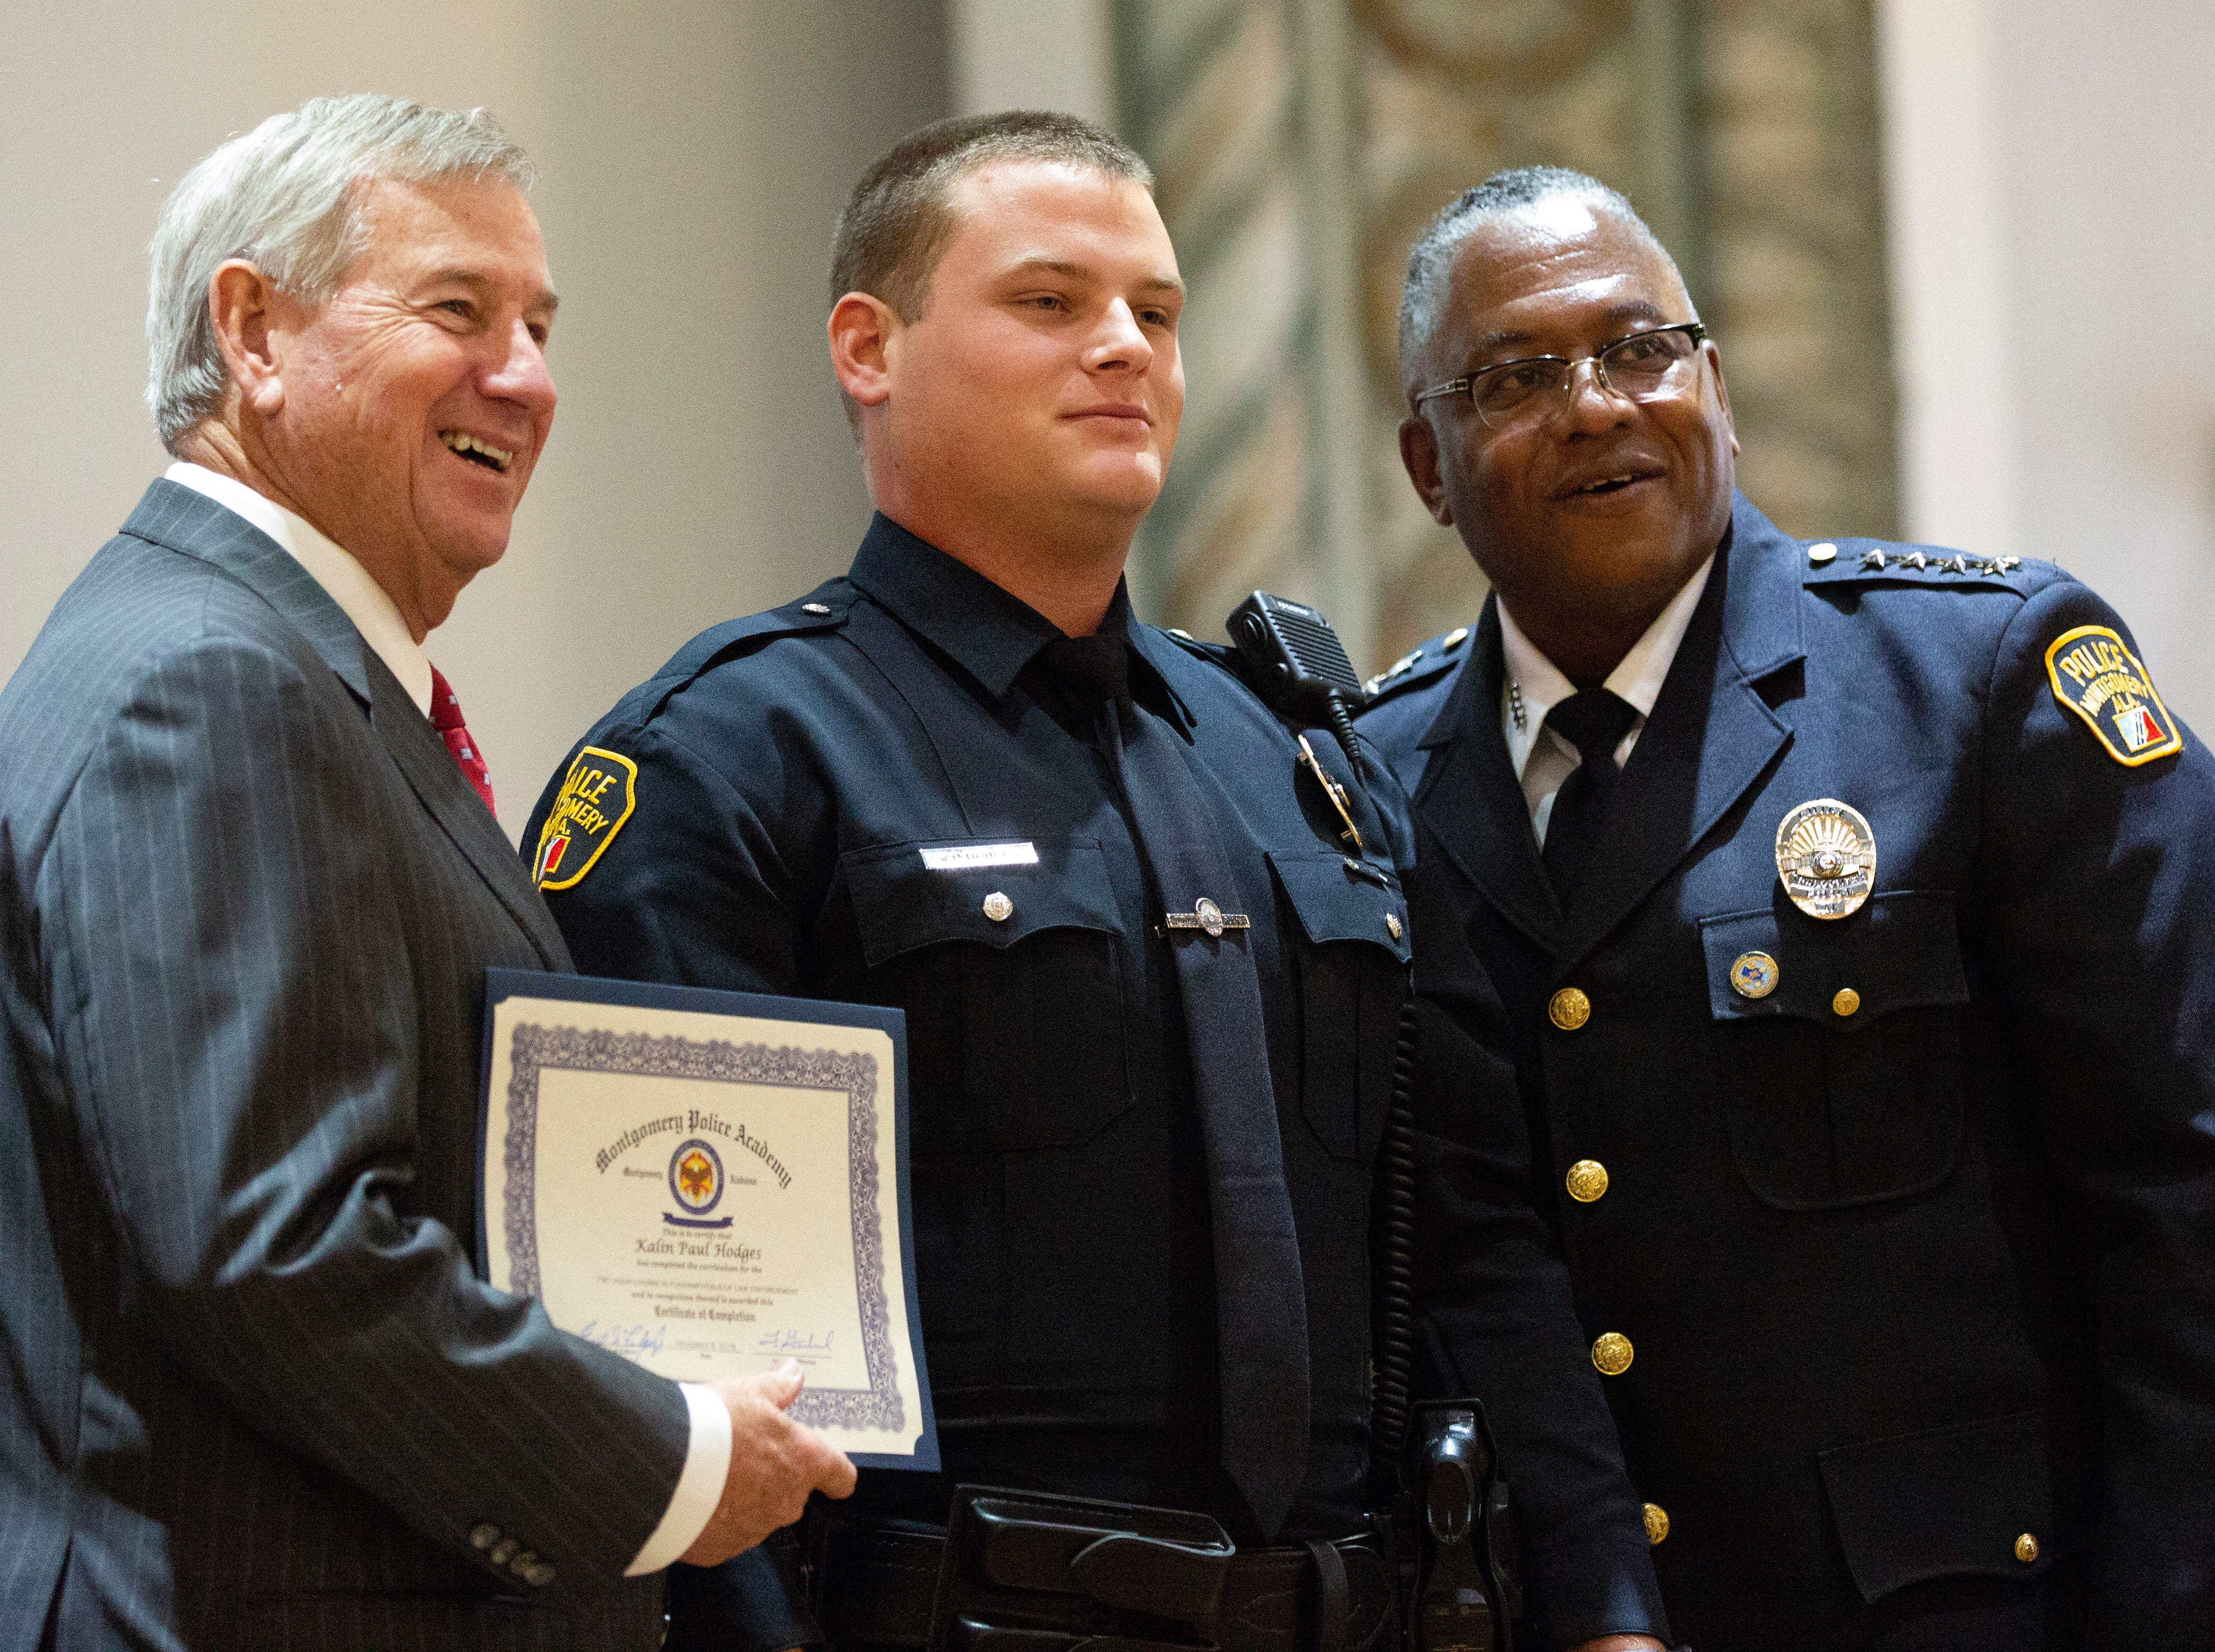 Montgomery police officer Kalin Hodges poses for a photo after graduating from the academy.